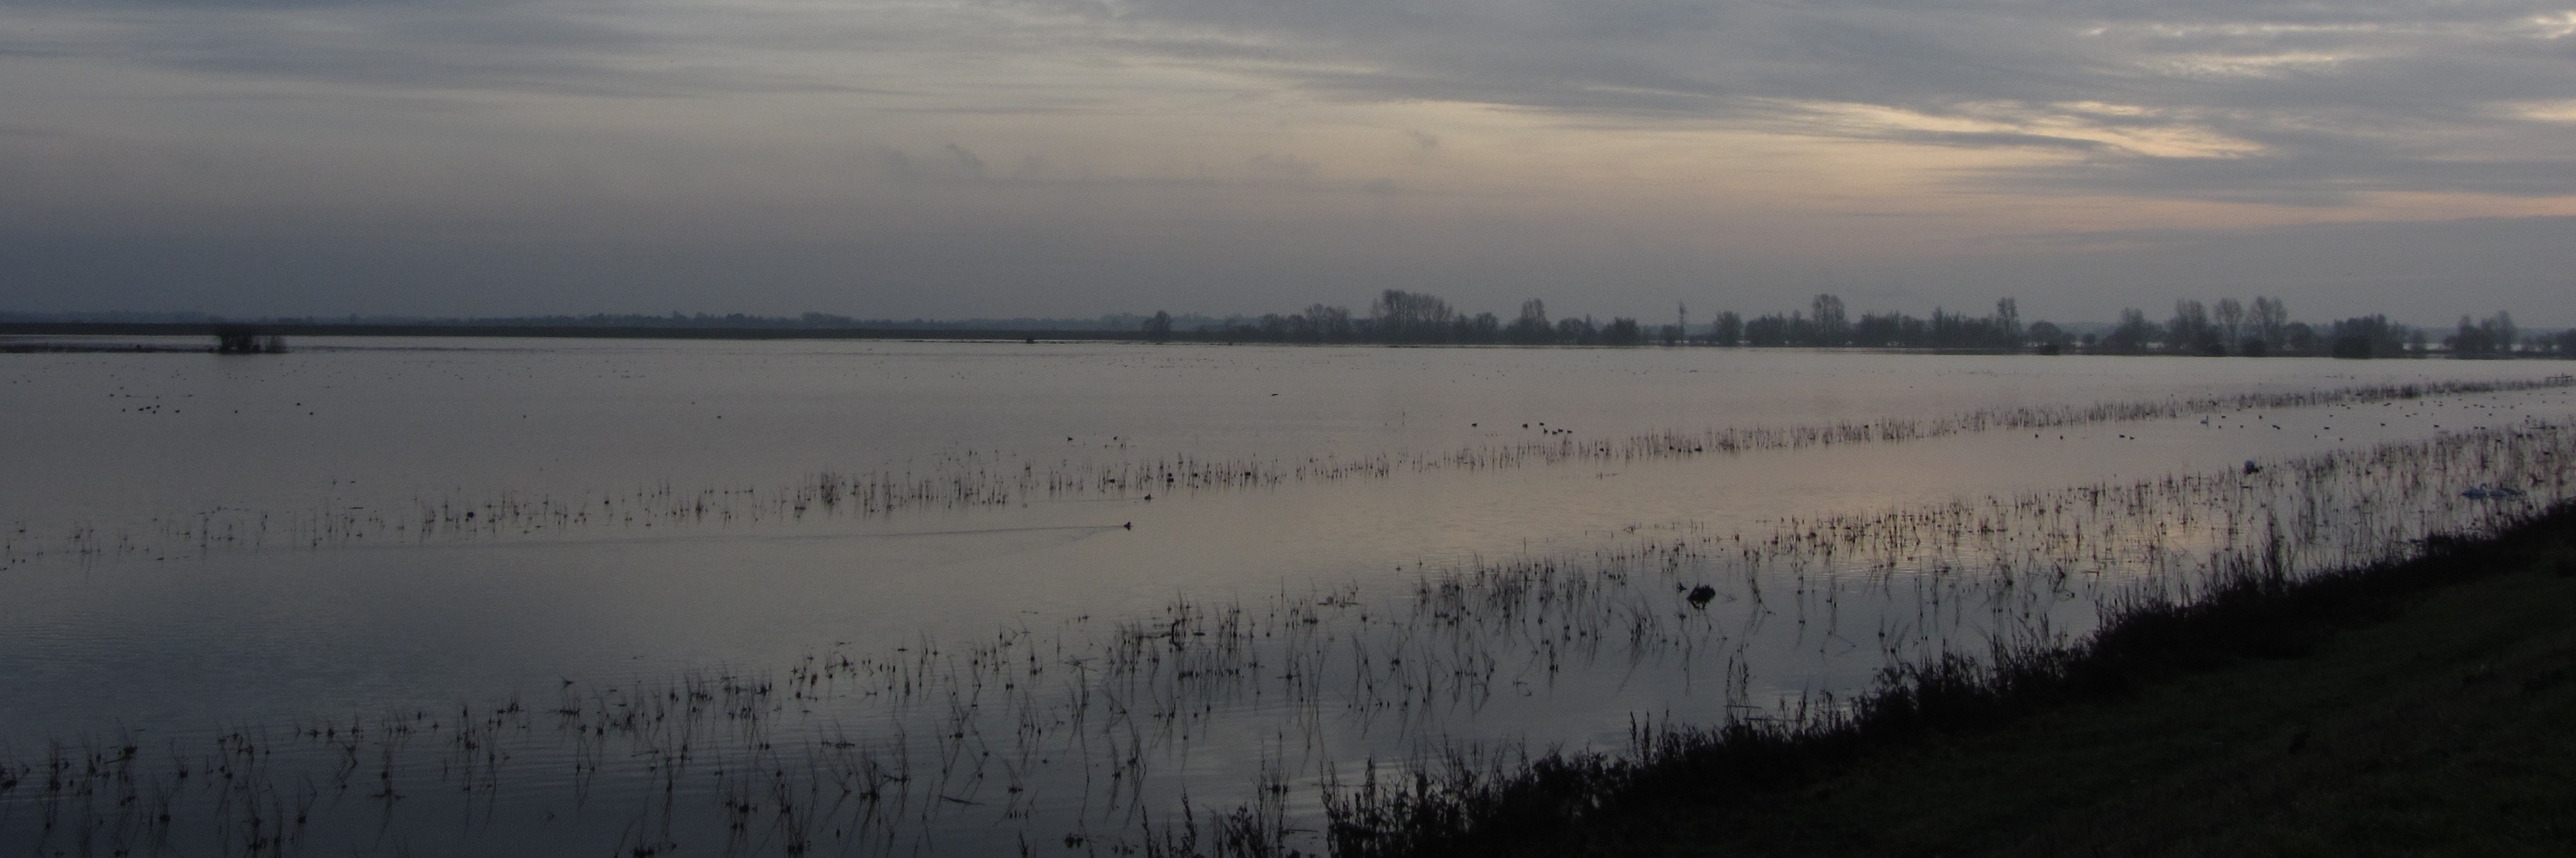 Flood water at the ouse washes. Very grey